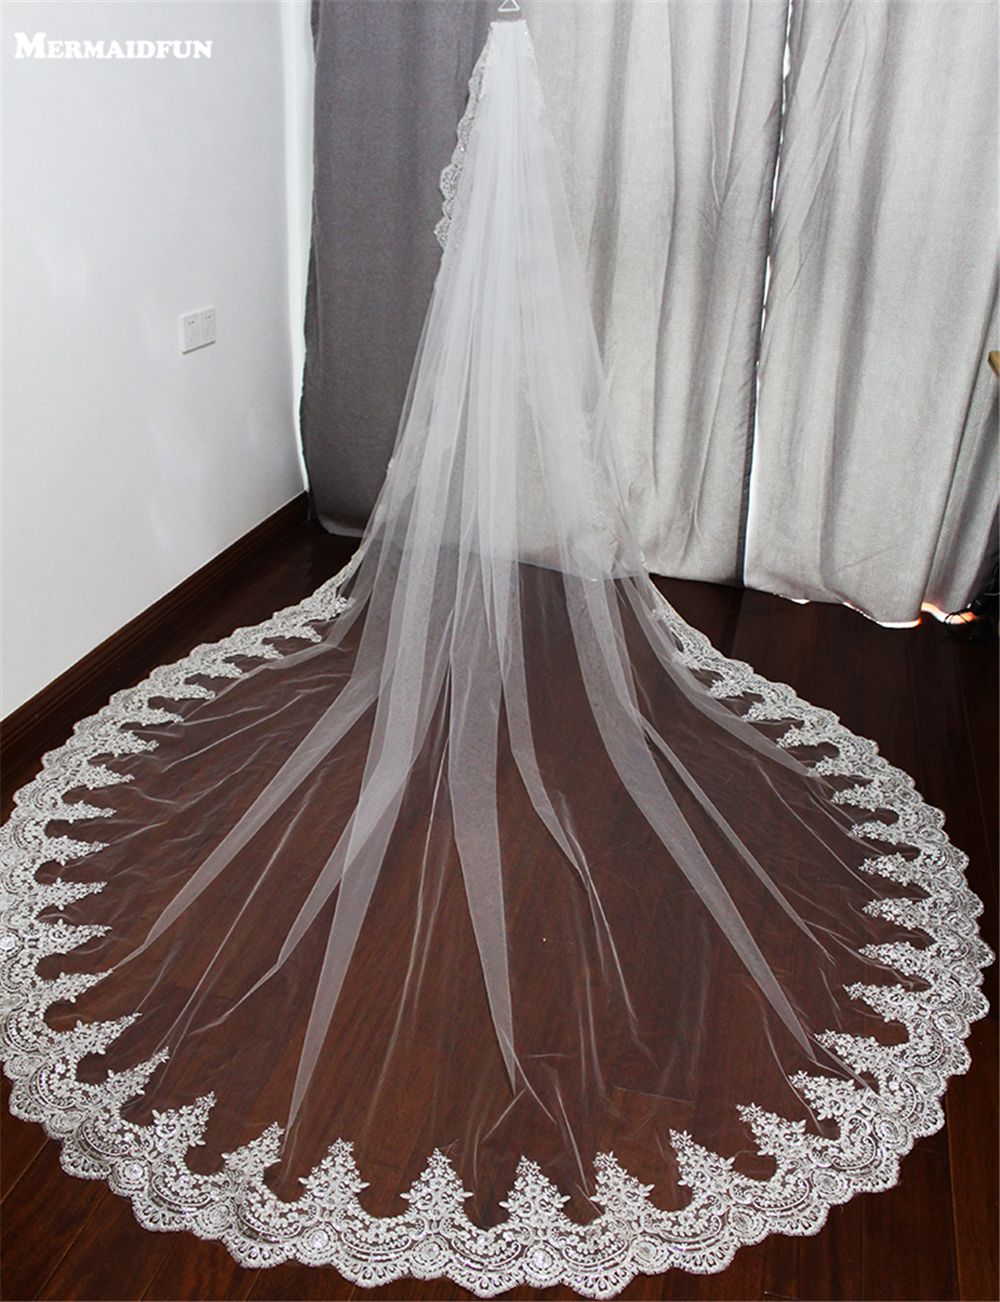 2019 One Layer 3 Meters Bling Sequined Lace Edge Long Wedding Veil With Comb 3 M White Ivory Bridal Veil Voile Mariage